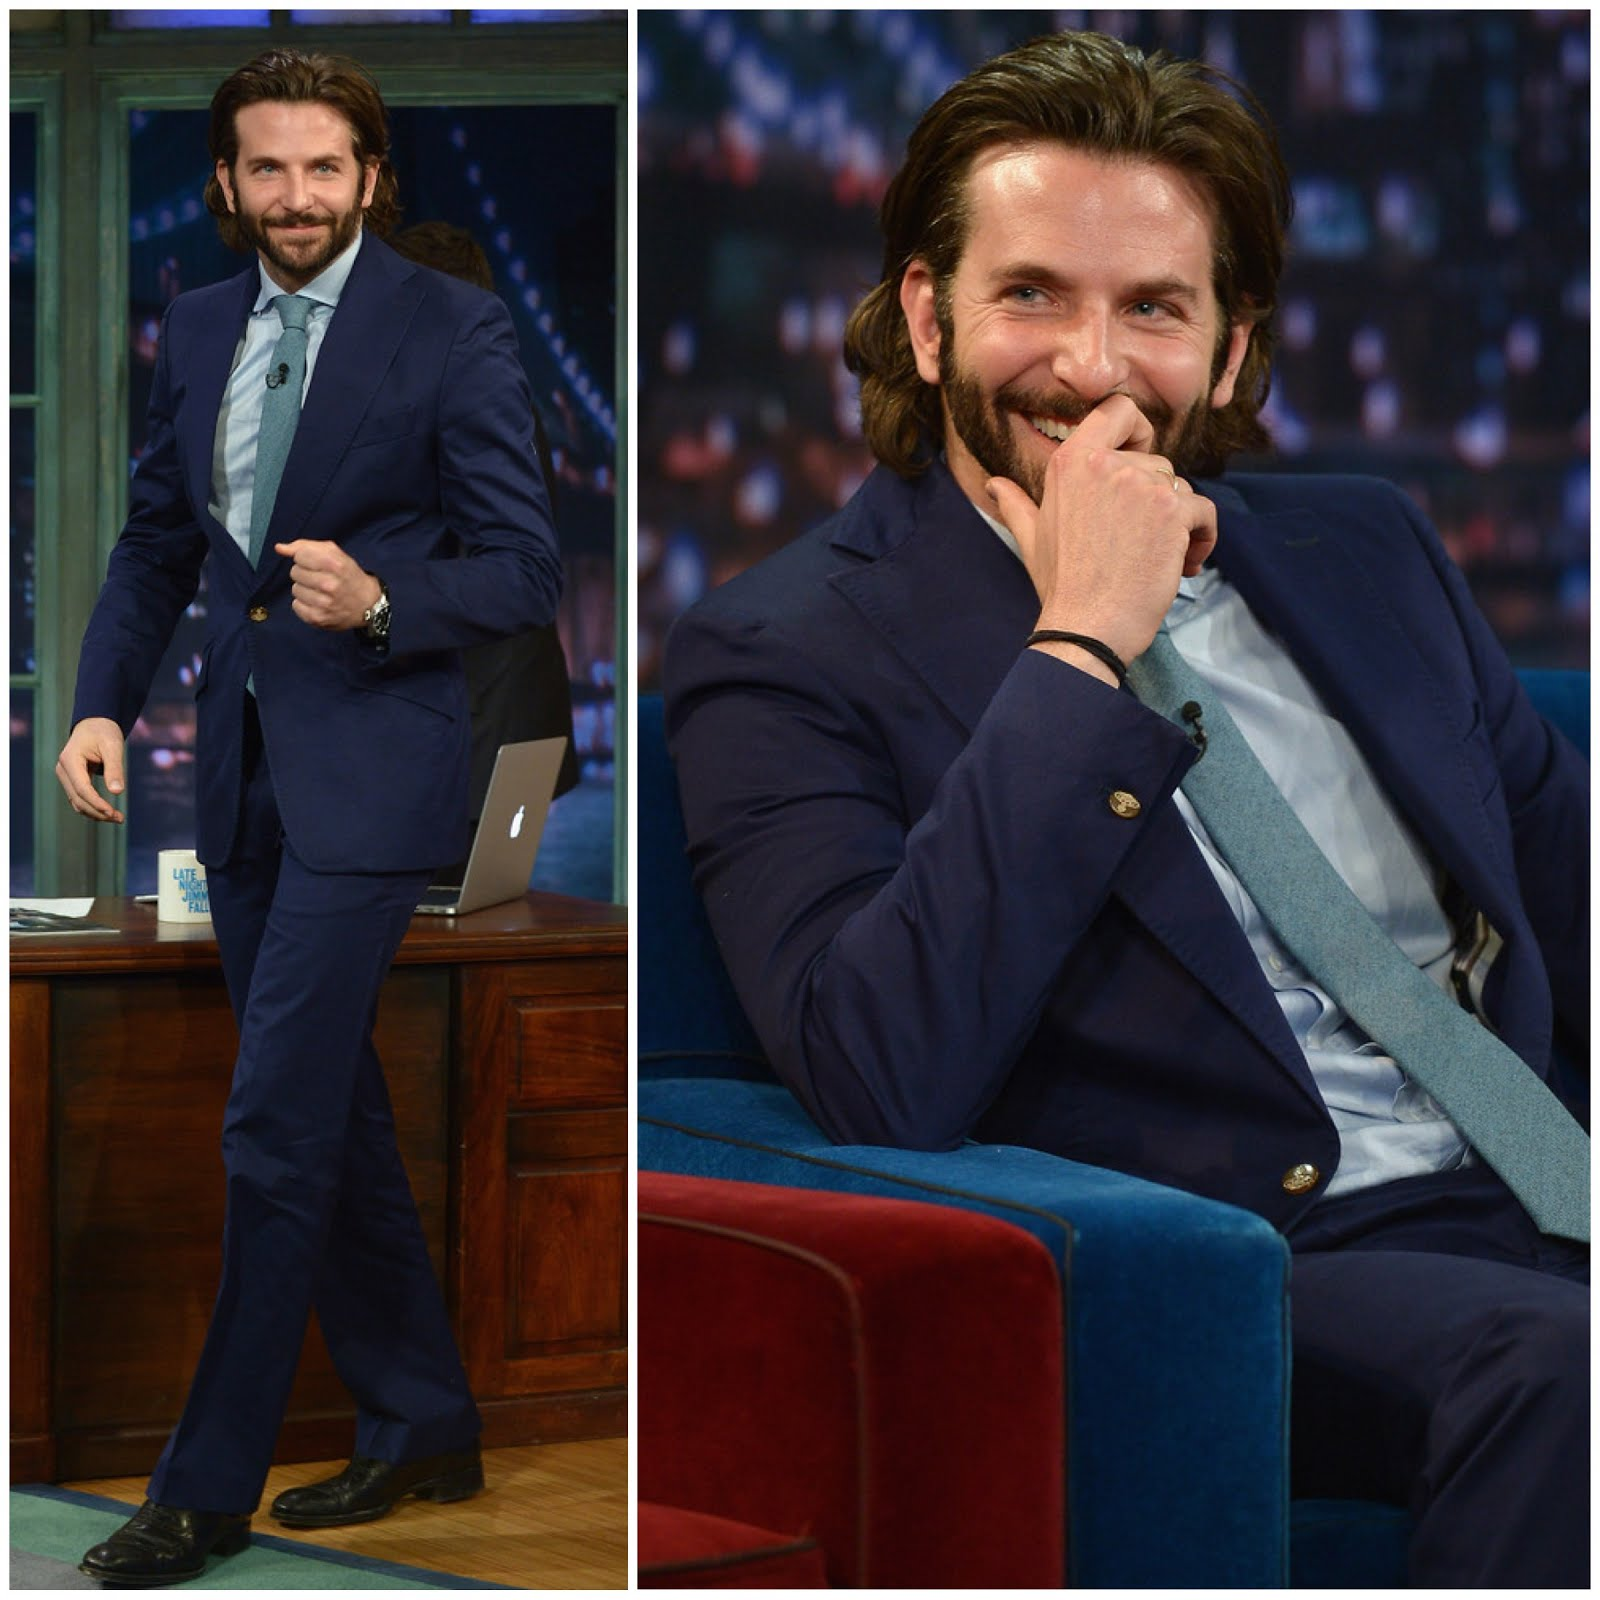 00O00 Menswear Blog: Bradley Cooper in Spring Summer 2013 Navy slim fit suit from Vivienne Westwood featuring notched lapels and a single button front fastening - Late Night with Jimmy Fallon May 2013